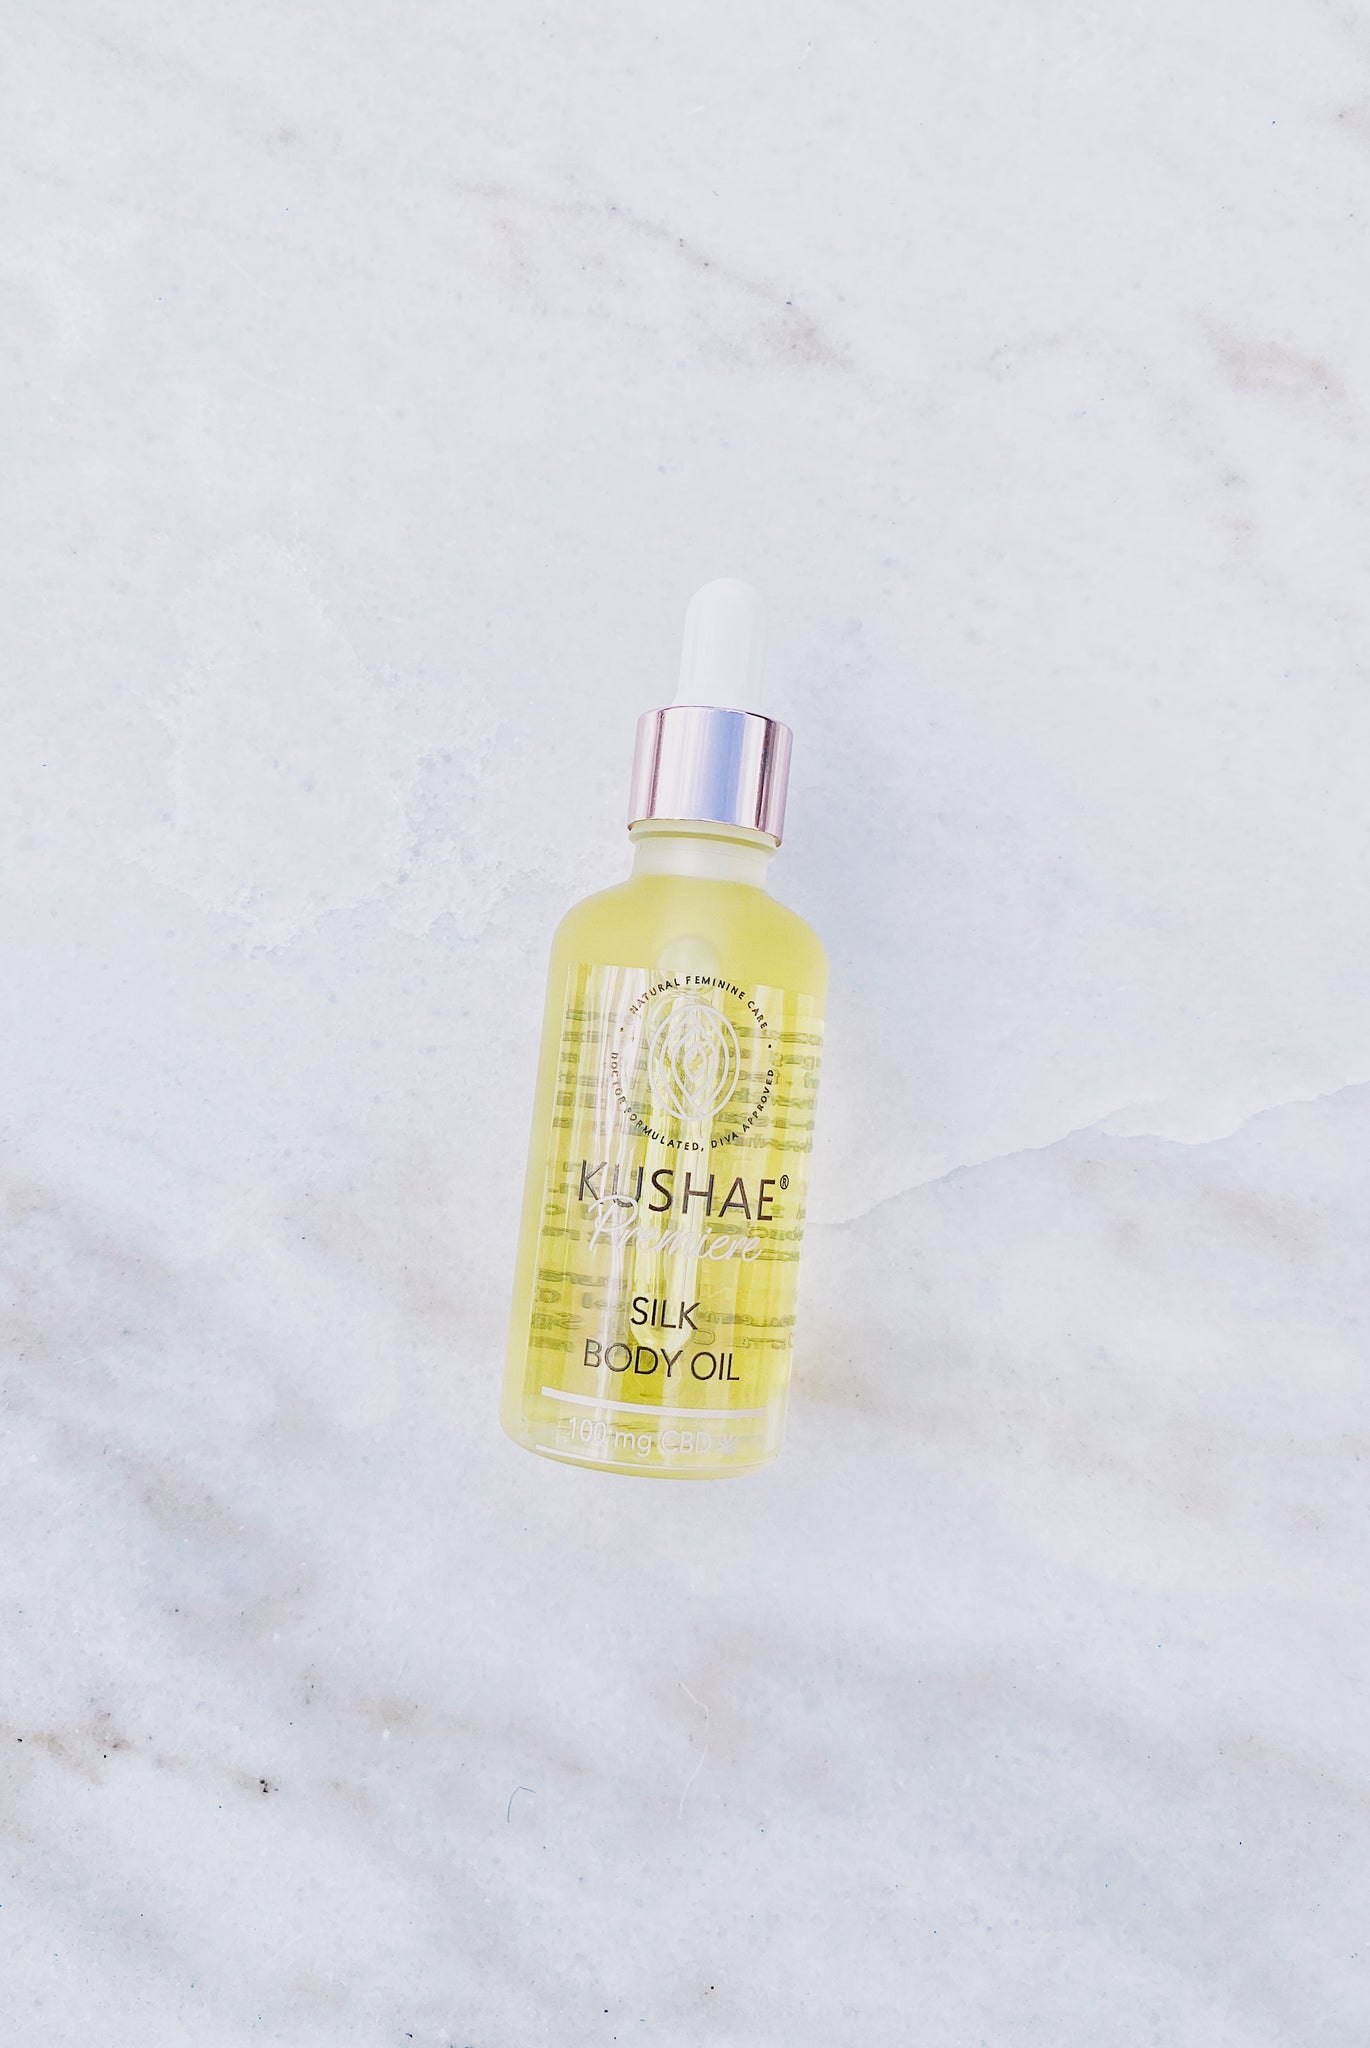 Kushae Silk Body Oil